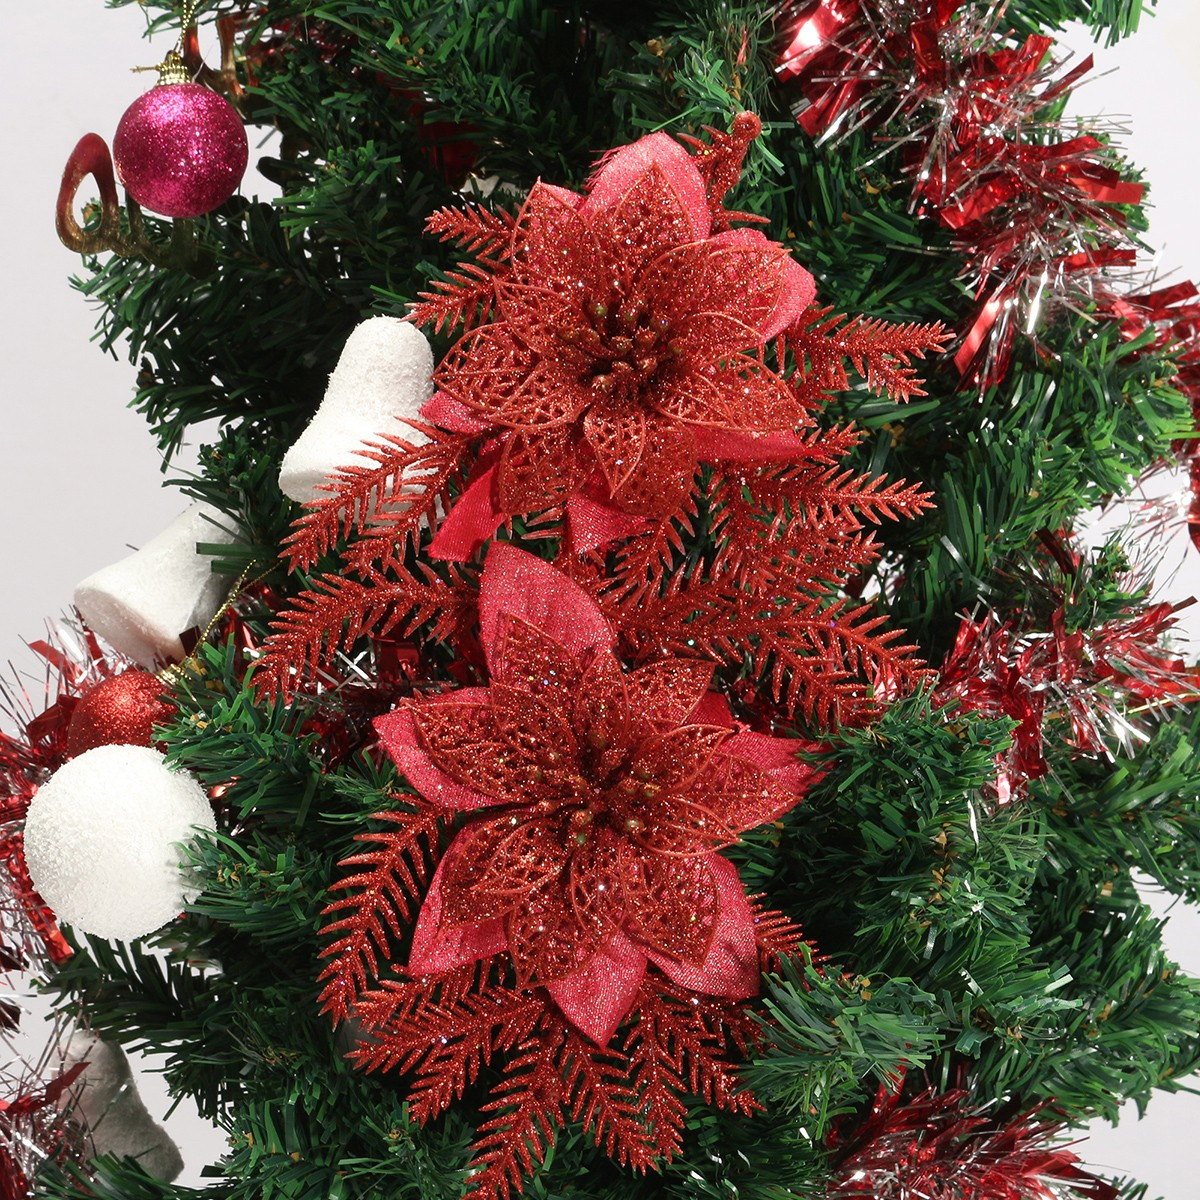 Glitter Artificial Christmas Tree Flowers Ornament Pendant Xmas Party Decoration